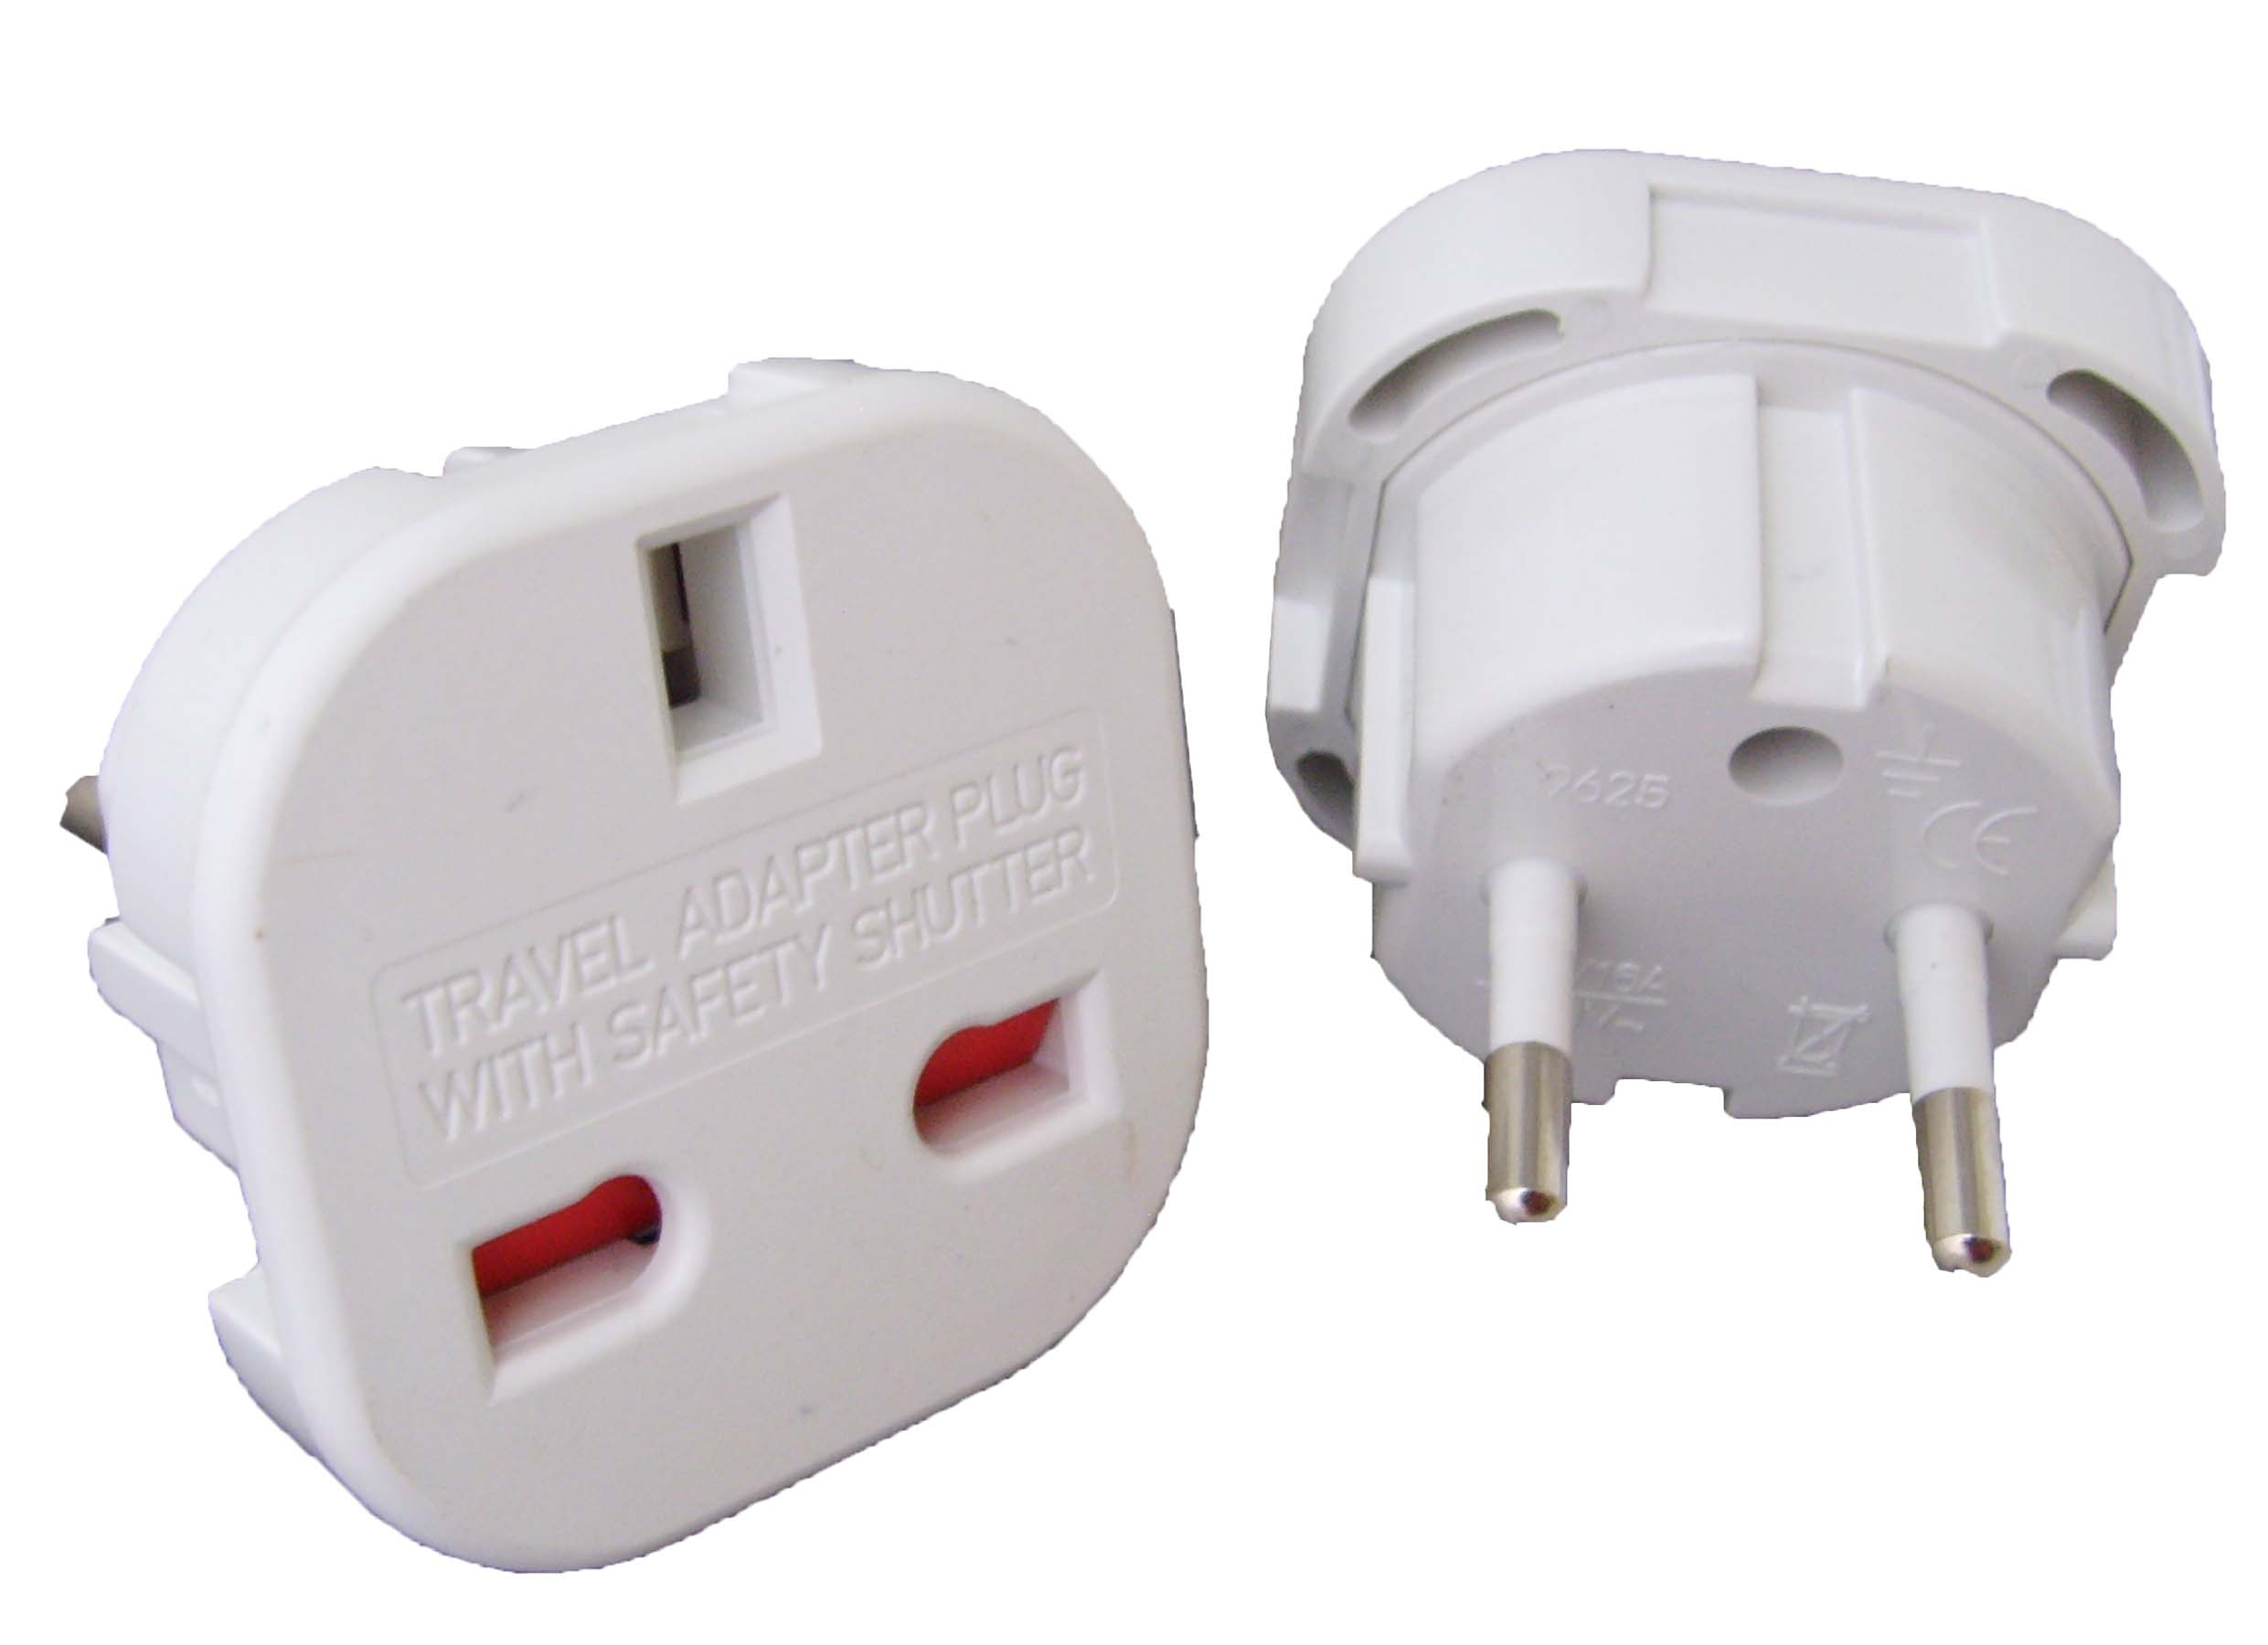 reisestecker adapter uk england steckdosenadapter f r deutschland ebay. Black Bedroom Furniture Sets. Home Design Ideas